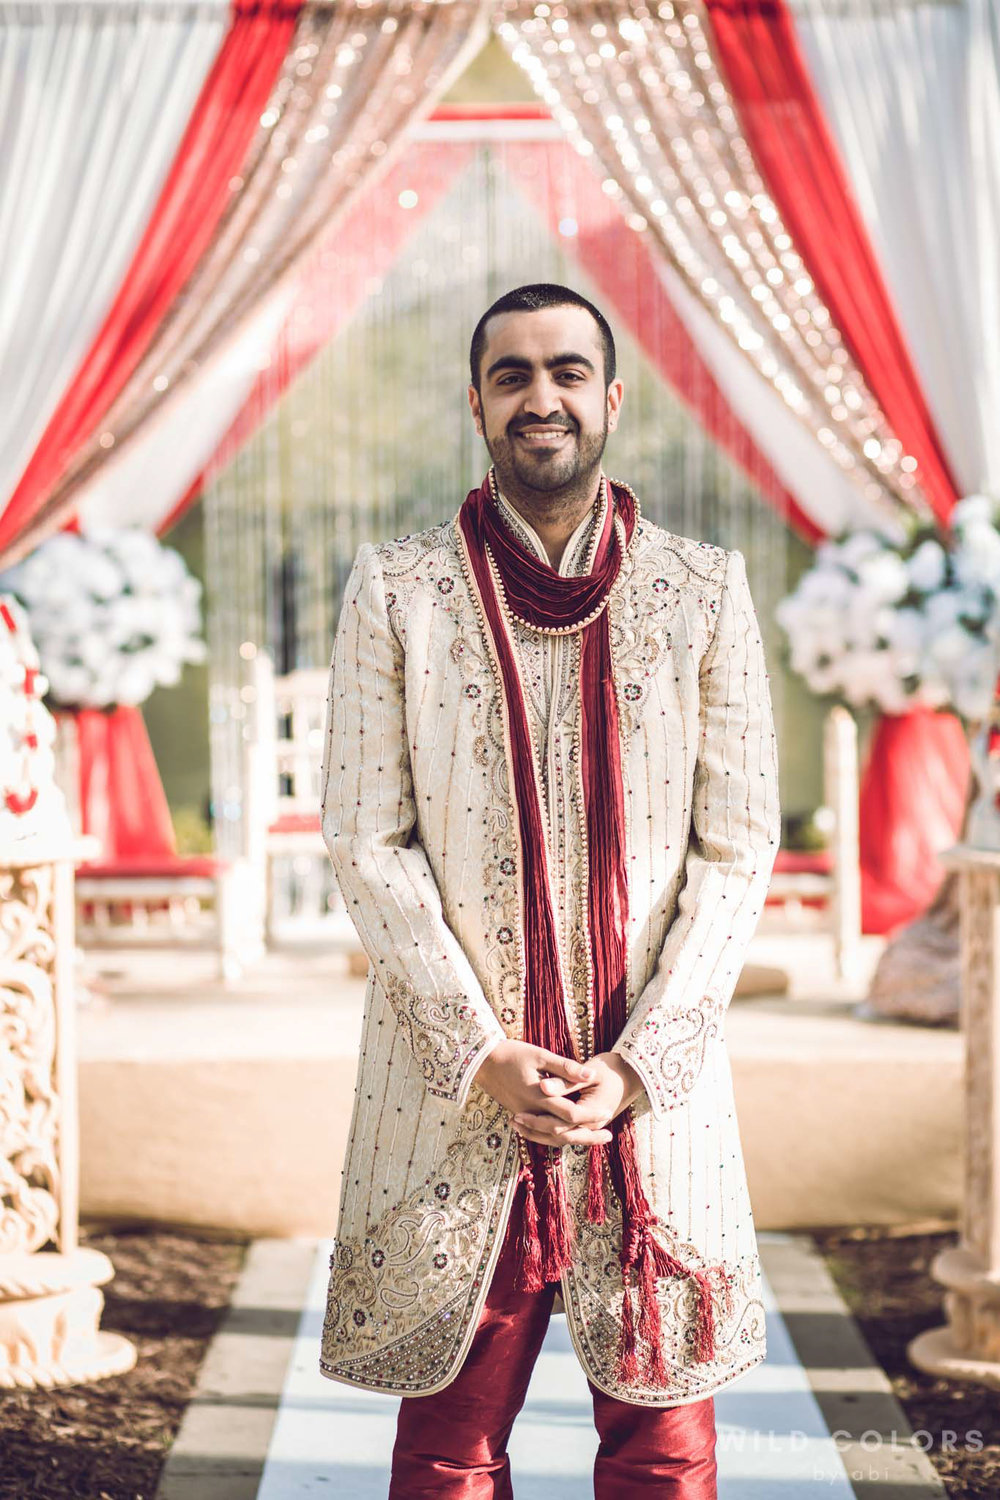 CANDID_INDIAN_WEDDING_ATLANTA_PHOTOGRAPHER-14.JPG